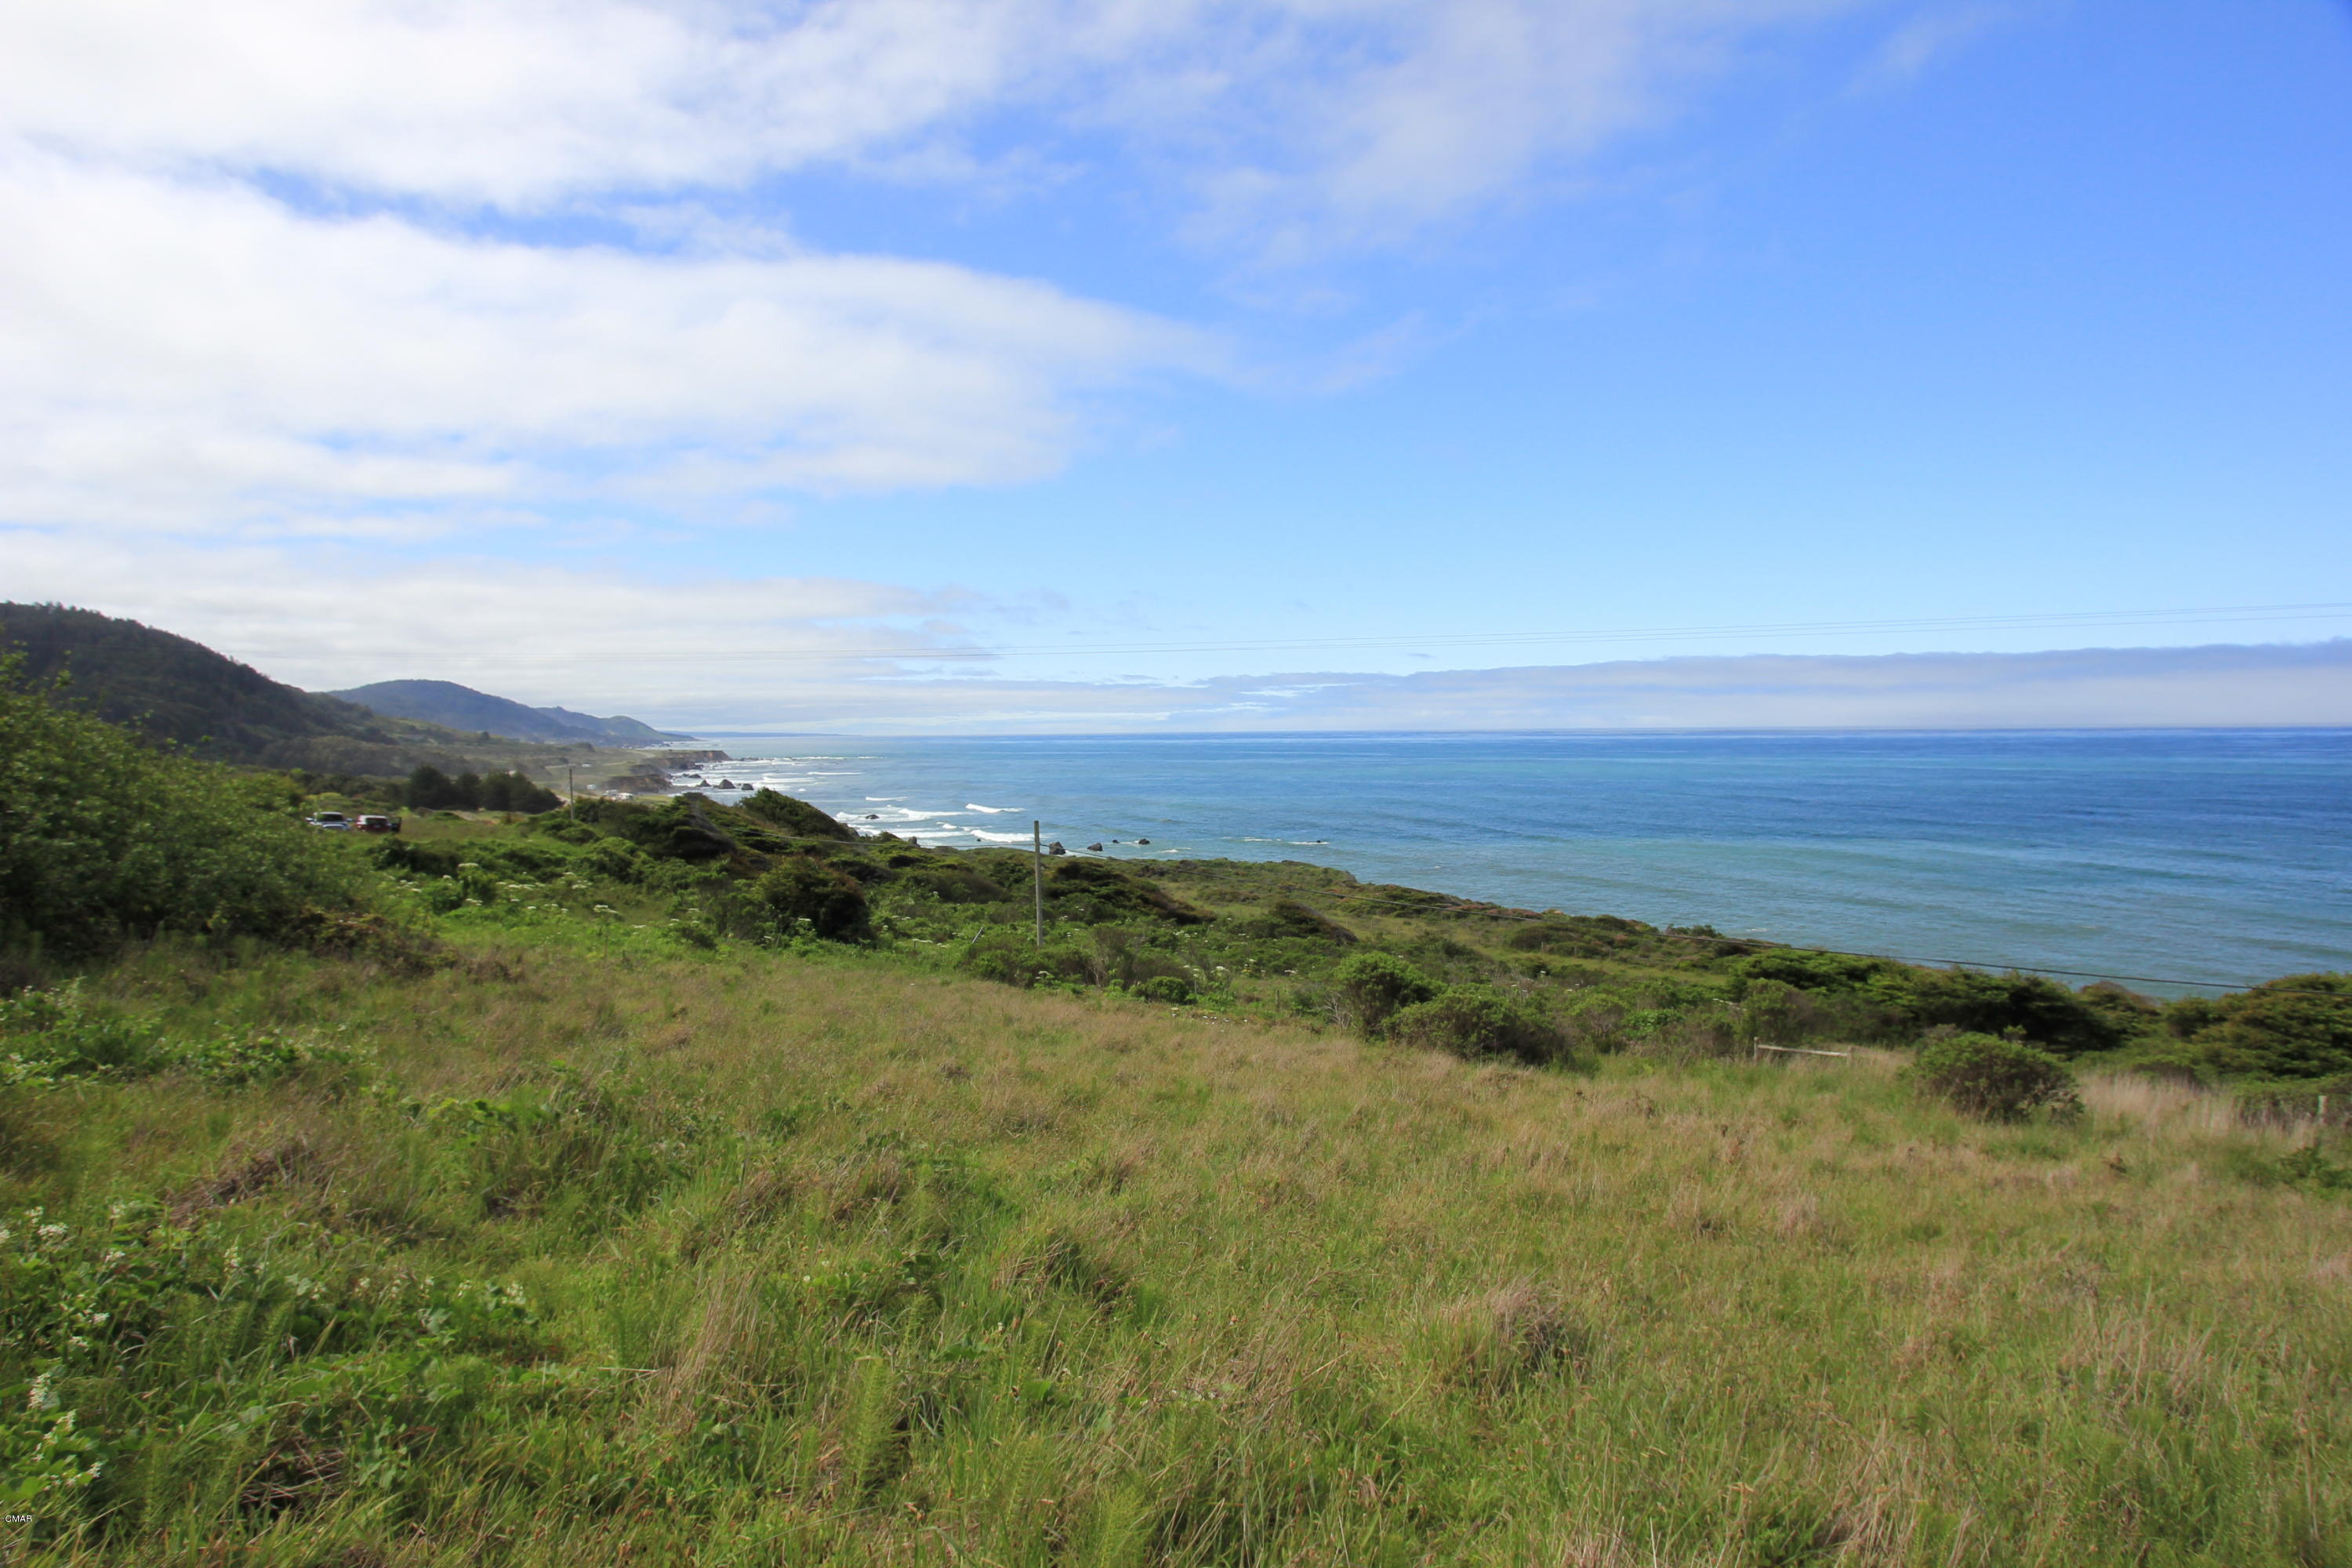 Stunning panoramic views of whales migrating the Pacific Ocean can be had from three potential building sites on this 20+ acre parcel. Venture north of the cul-de-sac and up the hill side to the first of three possible dream home sites. Relax to the sound of waves crashing on the beach below and a colony of sea lions barking from the rocks just west of the property. This location is the only one in this subdivision with no visible home sites to the north. You're only five minutes drive into the community of Westport. Fine dining is available at the Old Abalone Pub located in the Westport Hotel. Fishing and diving out of this quiet community feels like you're on a remote island. This Seascape Drive parcel is a magical place to build your dream home.